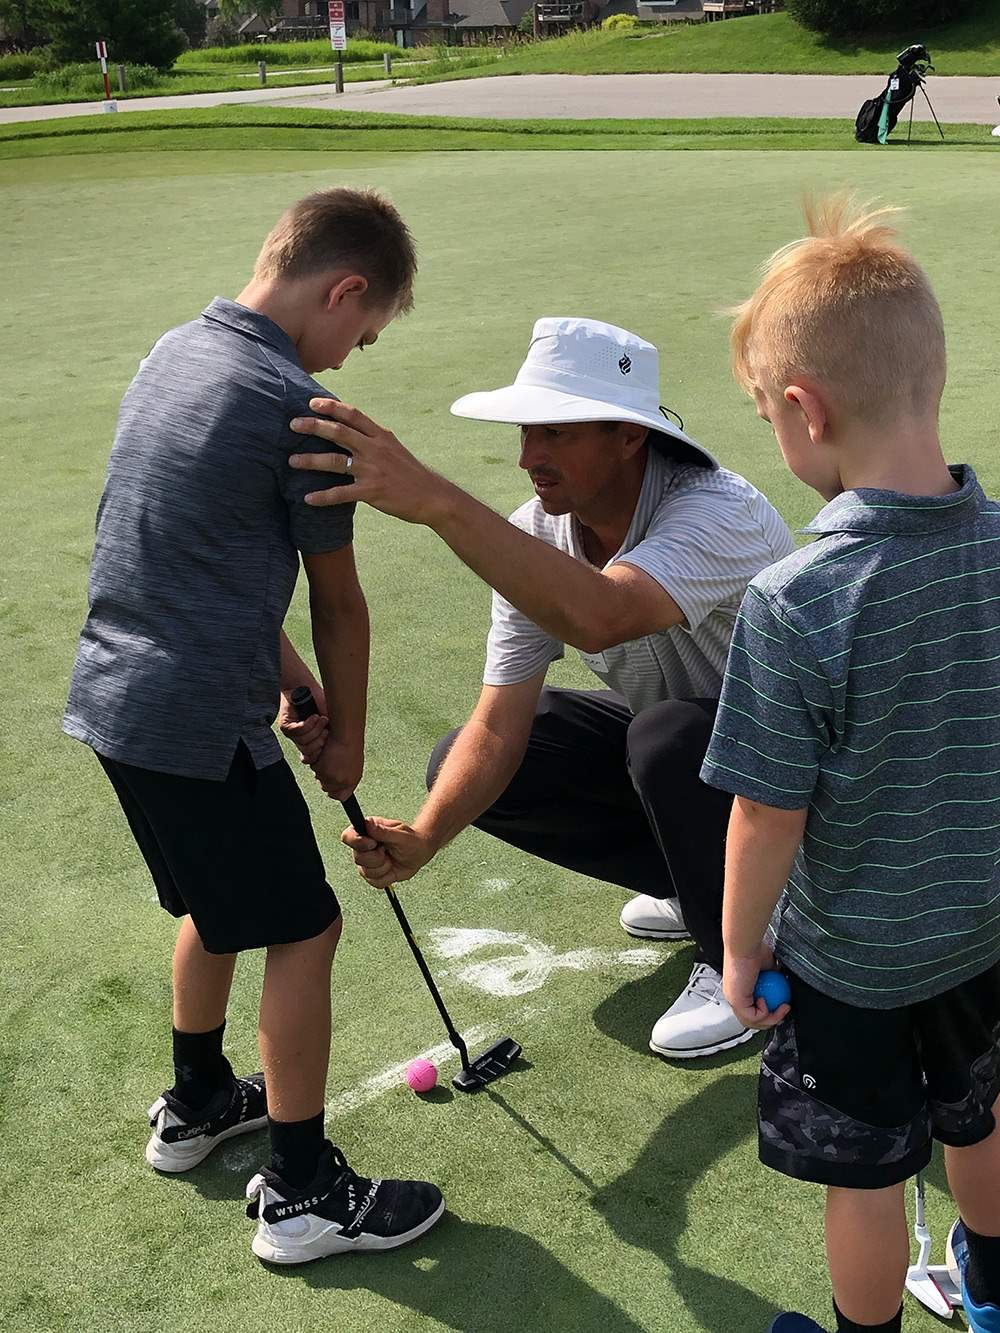 Junior-Golf-Putting-Lesson-2